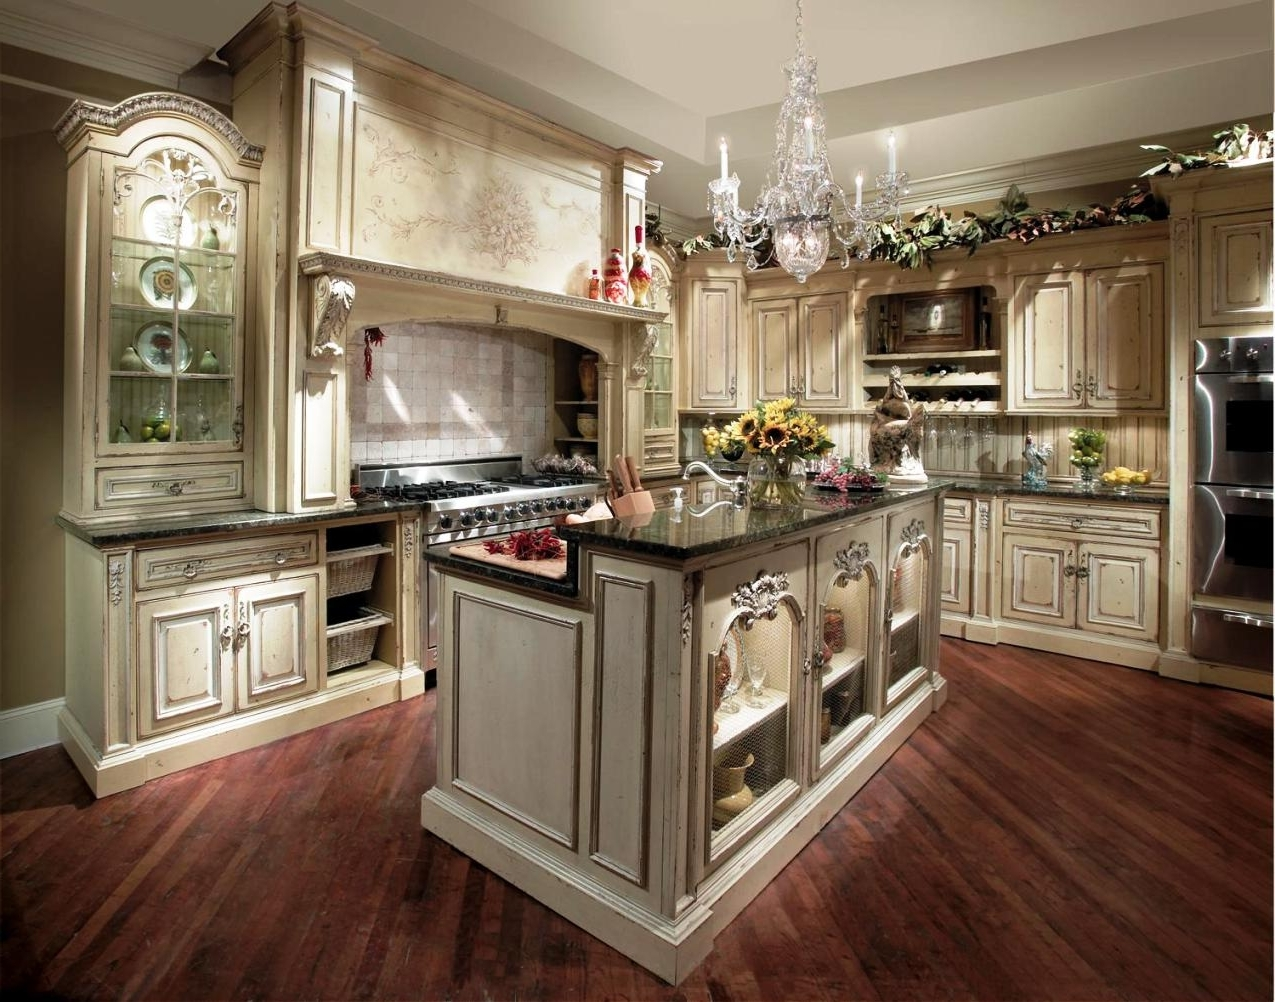 2018 French Country Chandeliers For Kitchen Within Traditional French Country Kitchen With High Quality Hardwood (View 14 of 15)